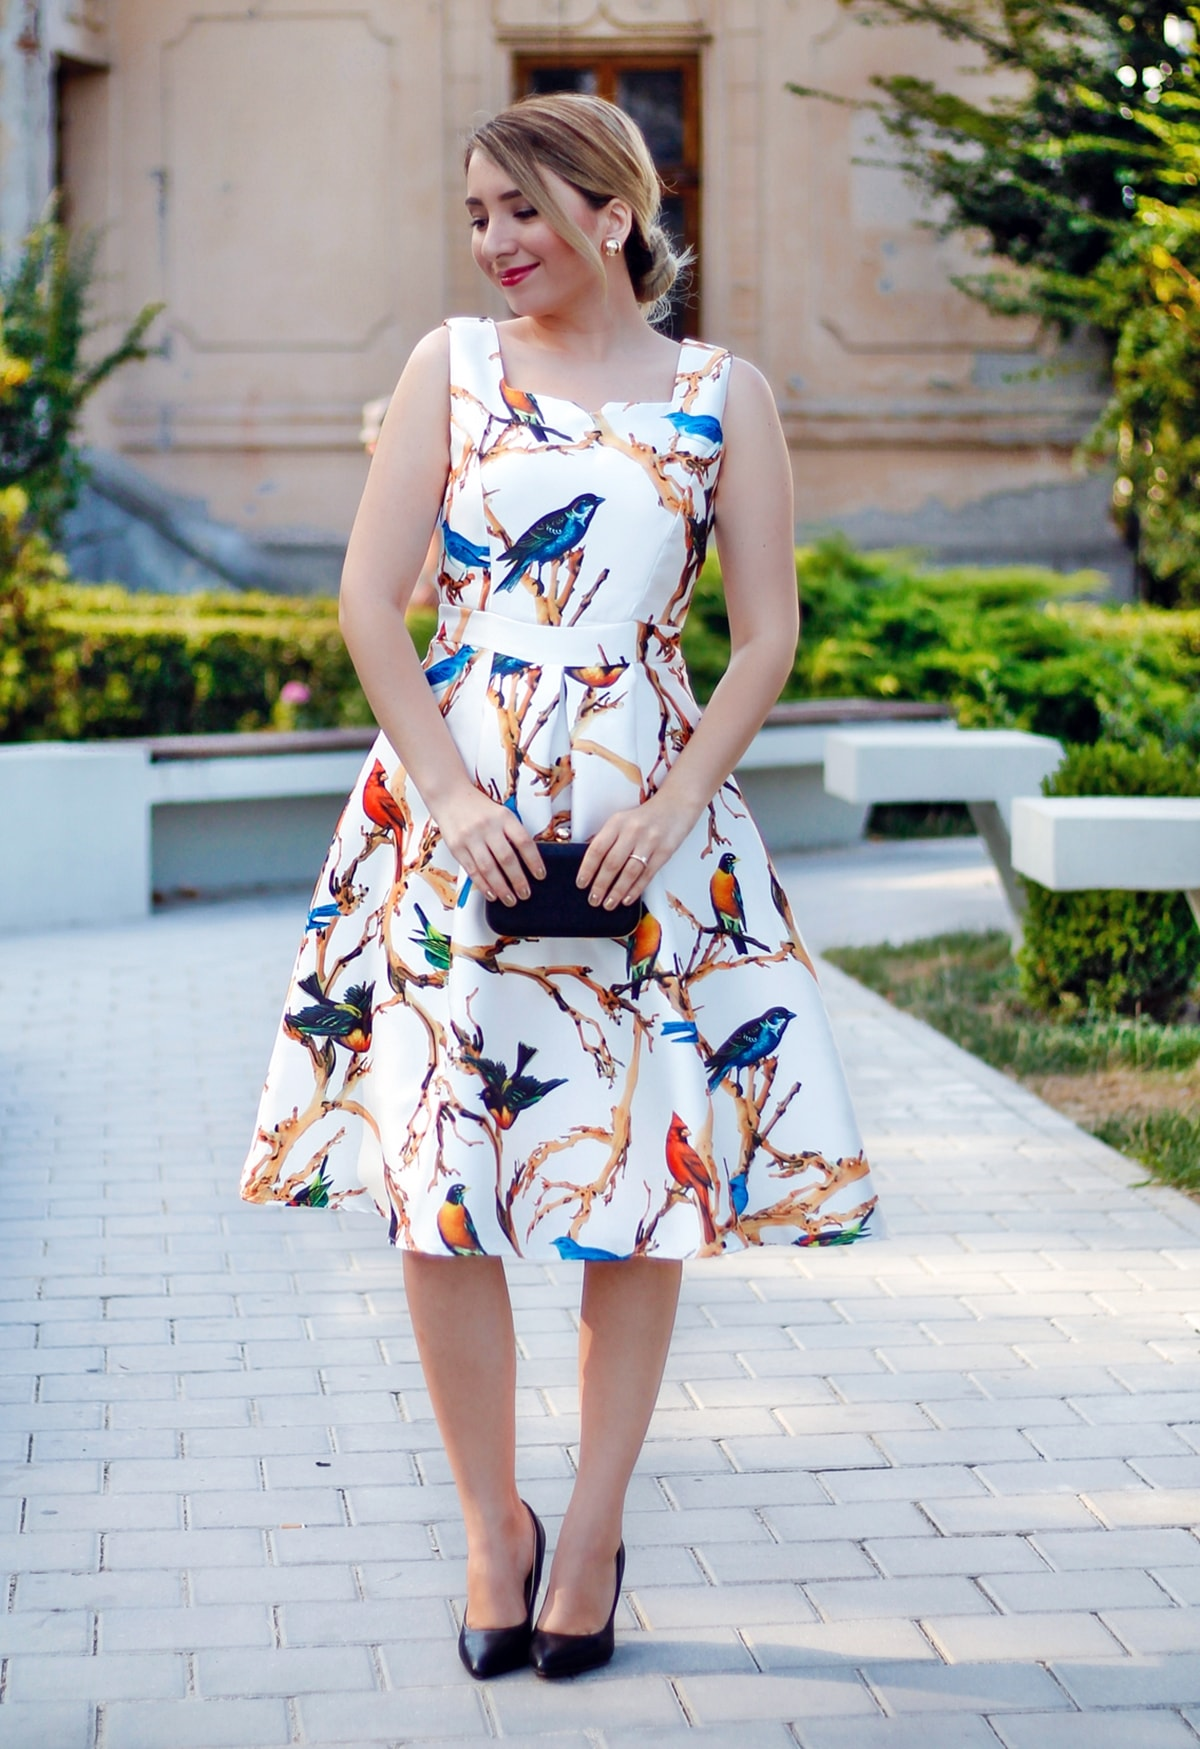 street style, romantic vintage birds print dress, midi, civil wedding look, andreea ristea